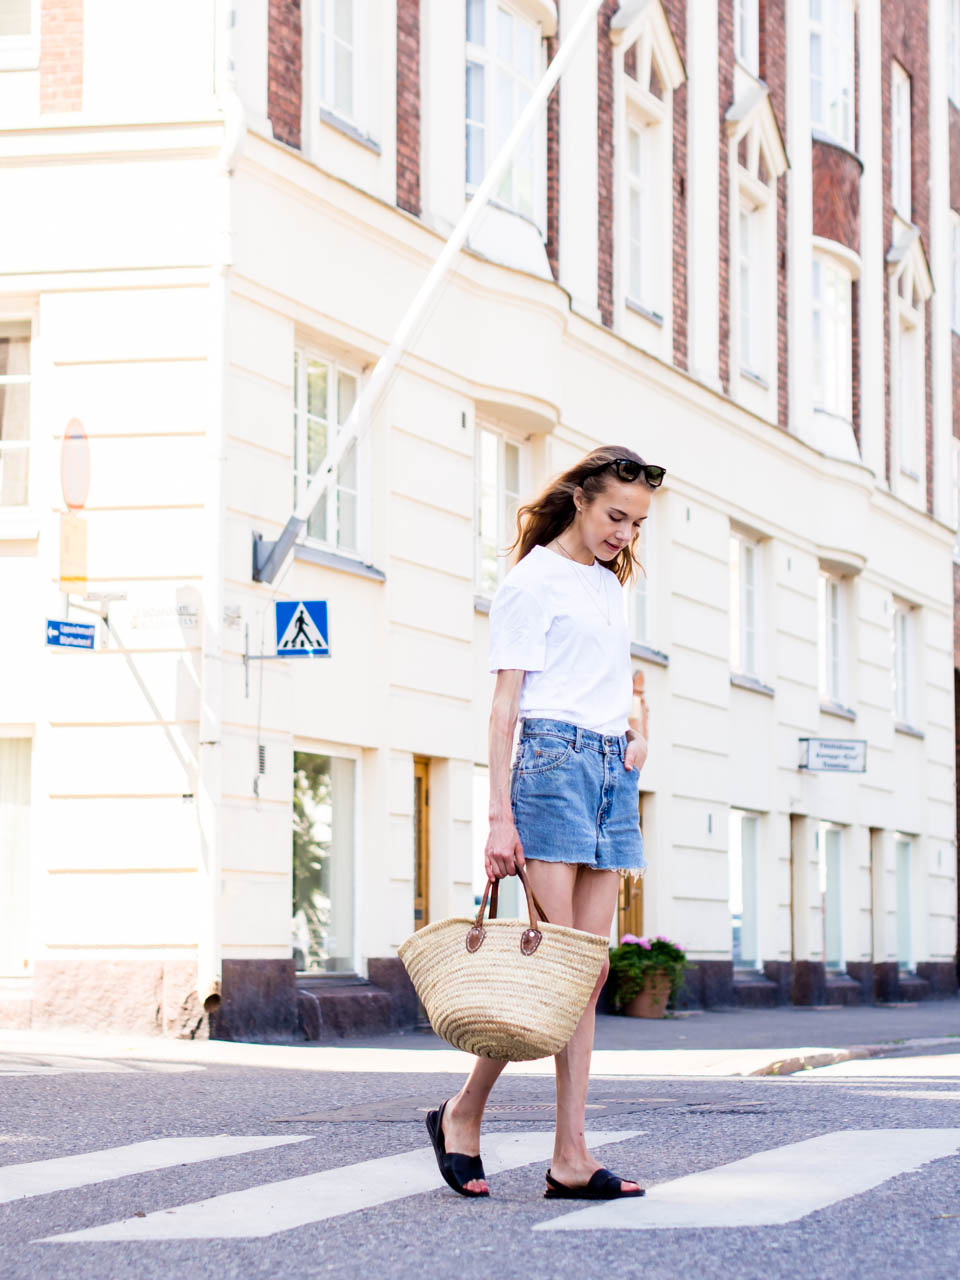 fashion-blogger-outfit-inspiration-summer-streetstyle-helsinki-white-tshirt-vintage-levis-denim-shorts